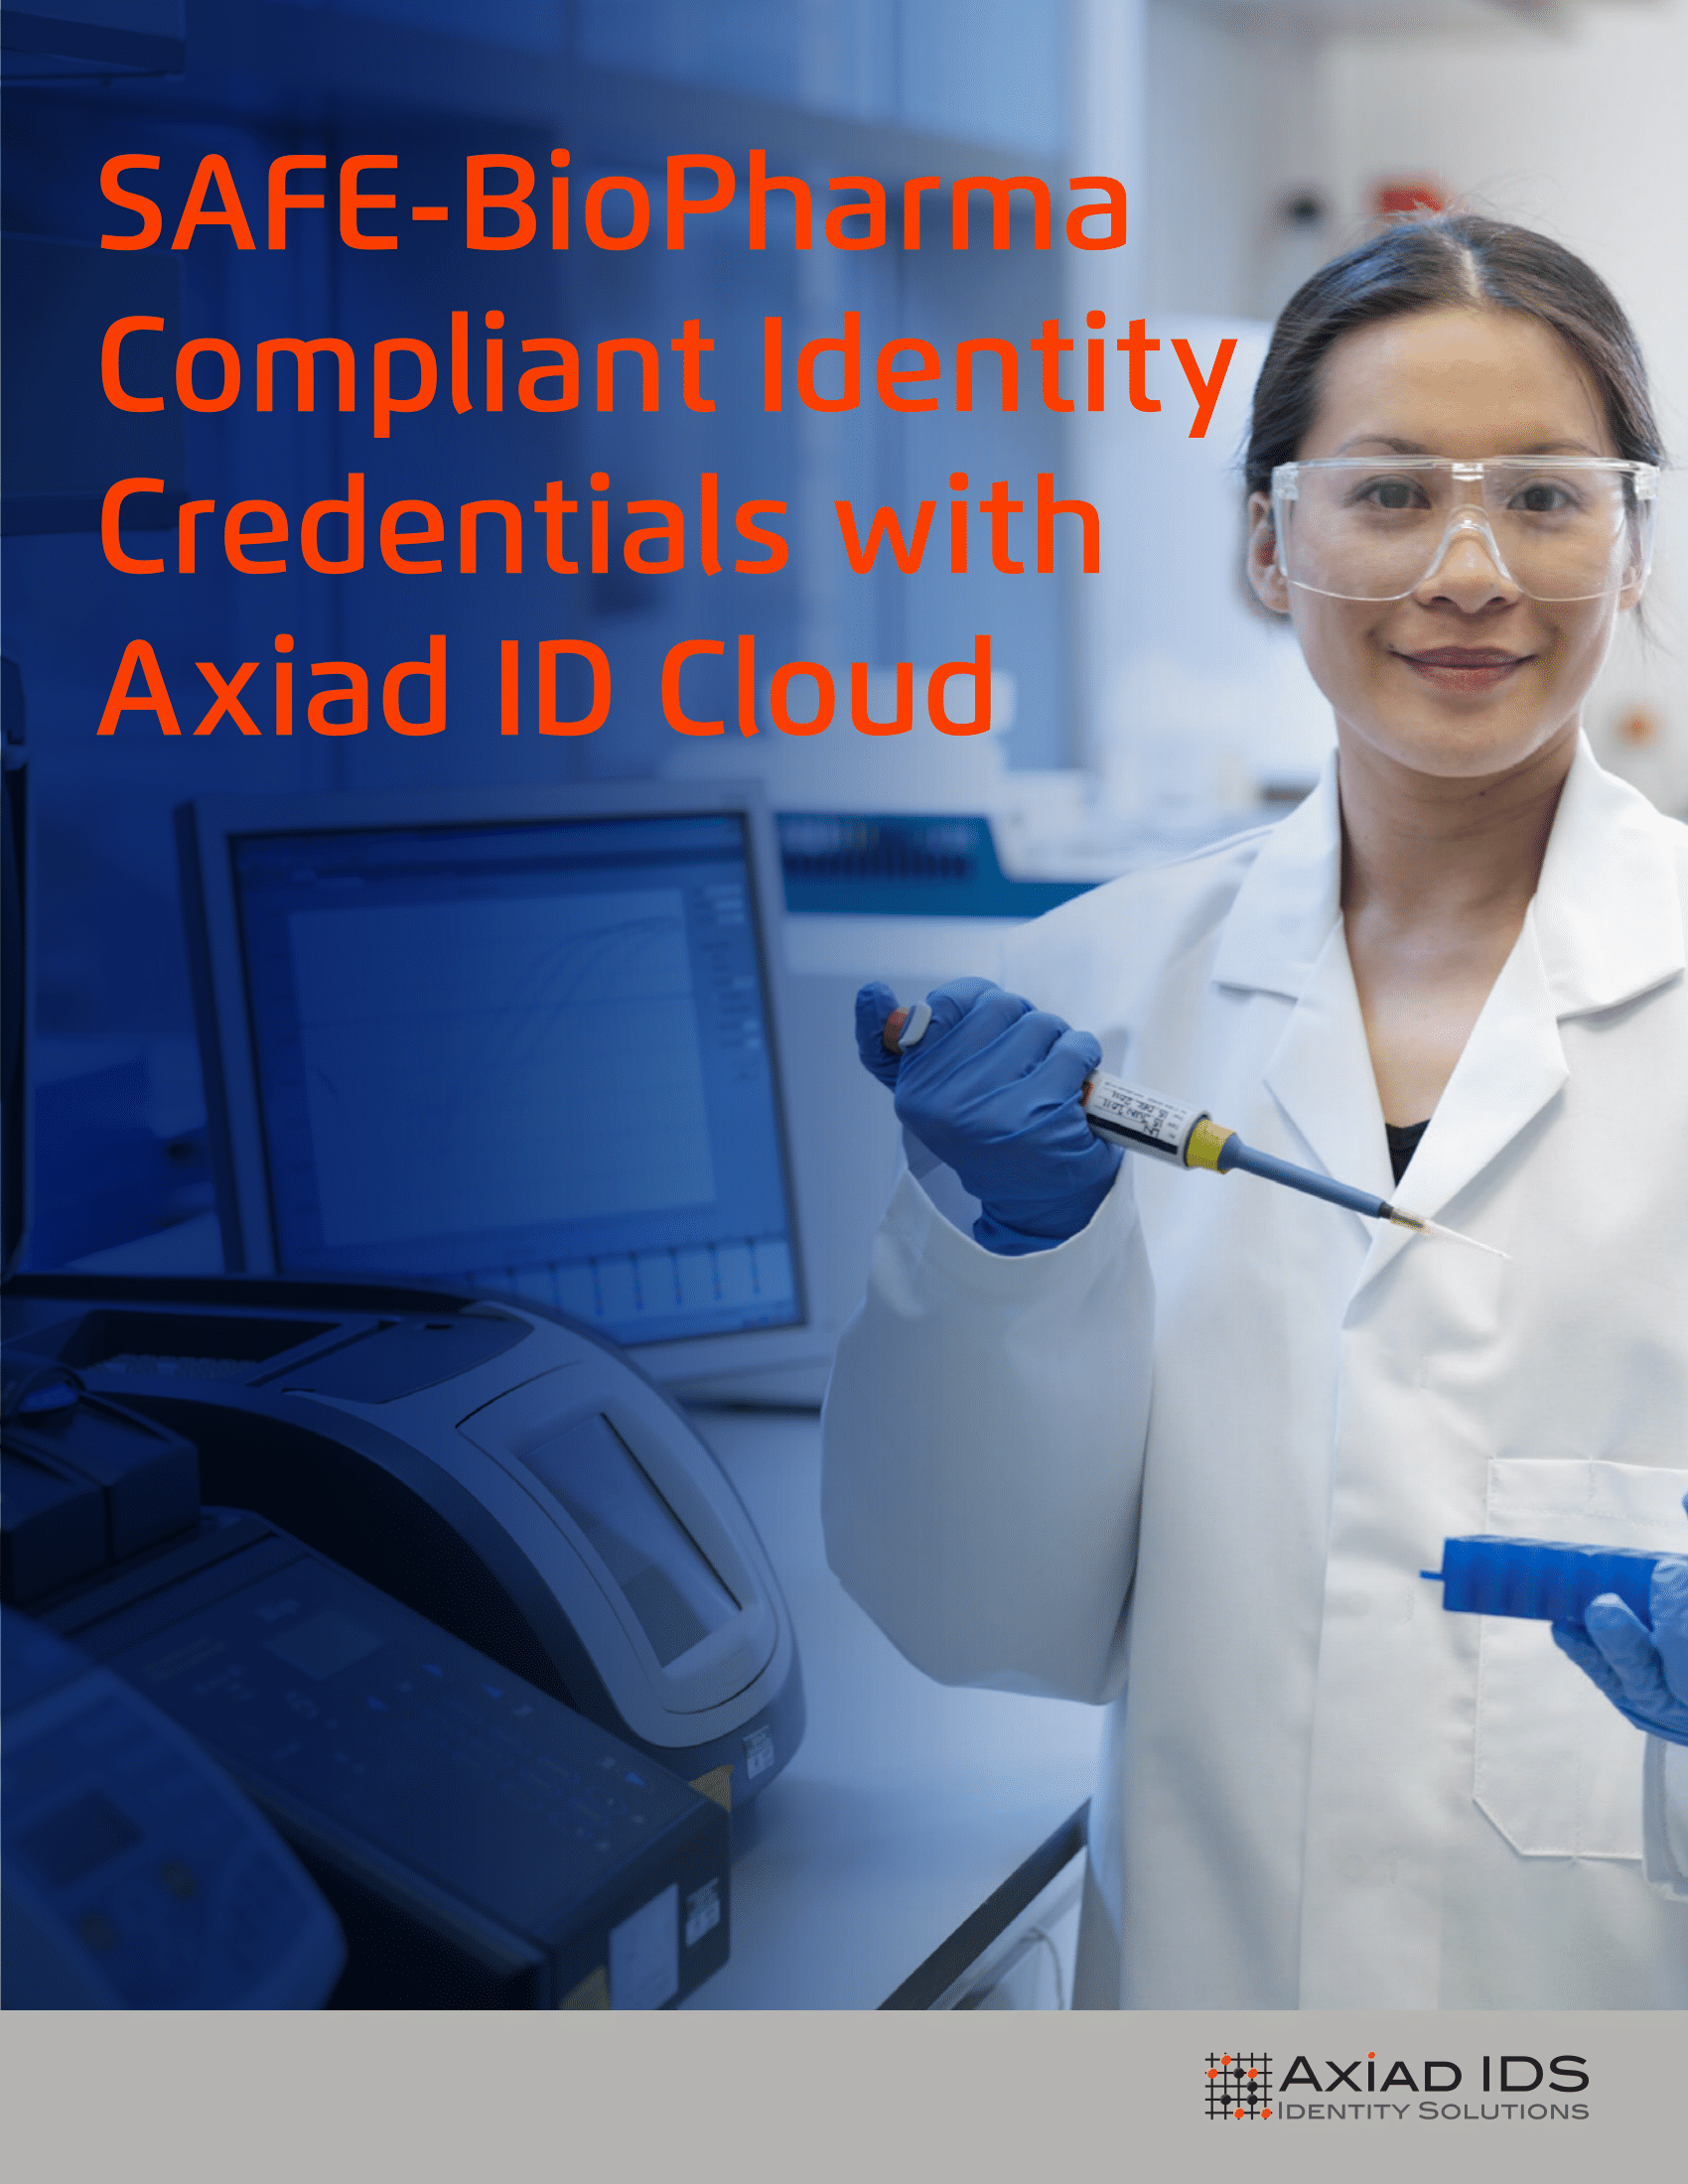 Axiad_ID_Cloud_SAFE-Image-Front.png